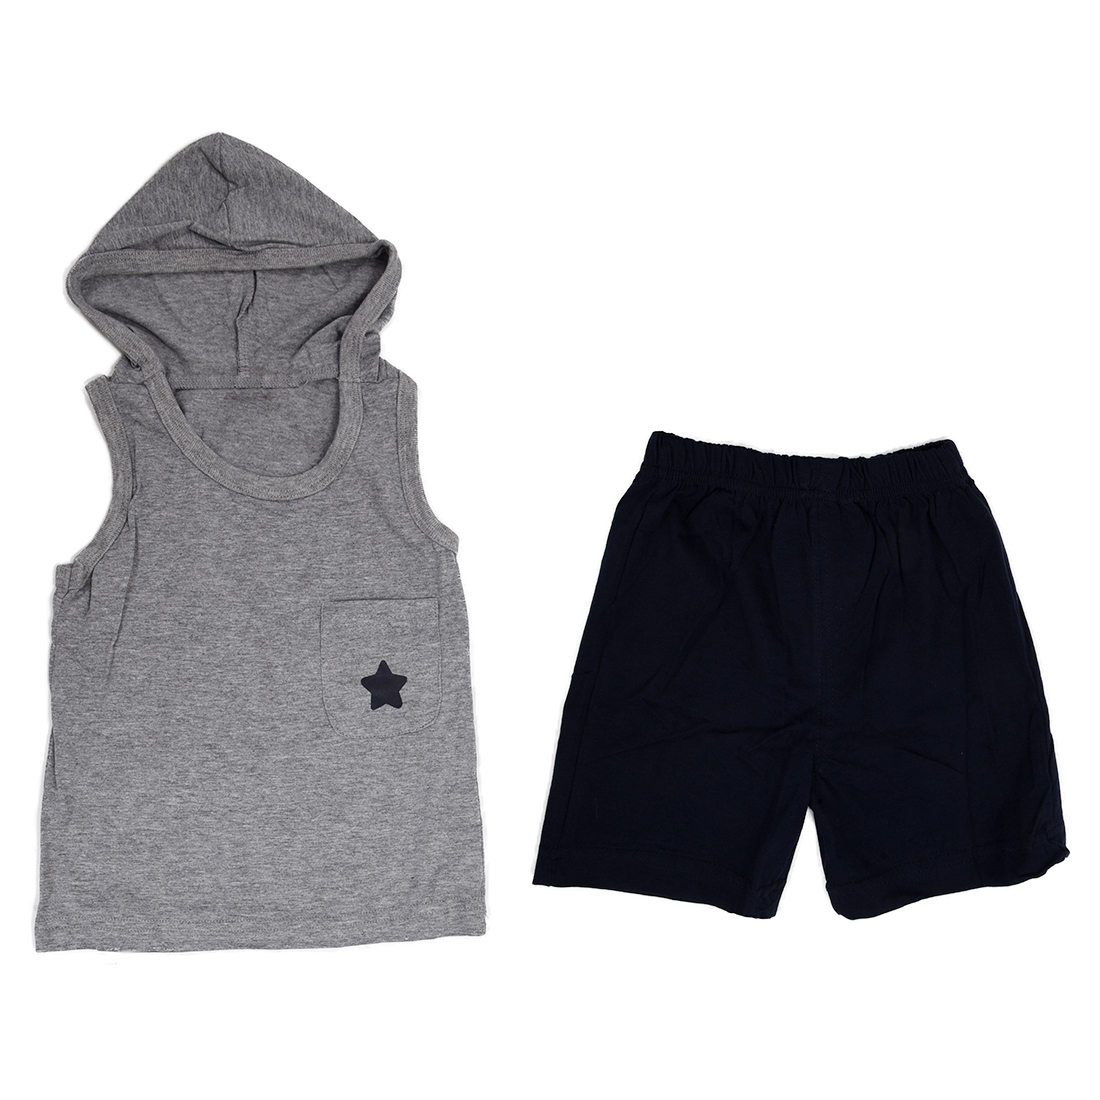 ABWE boy girl children clothing cotton summer baby kids cloth suit set vest + short hooded sports sets star gray